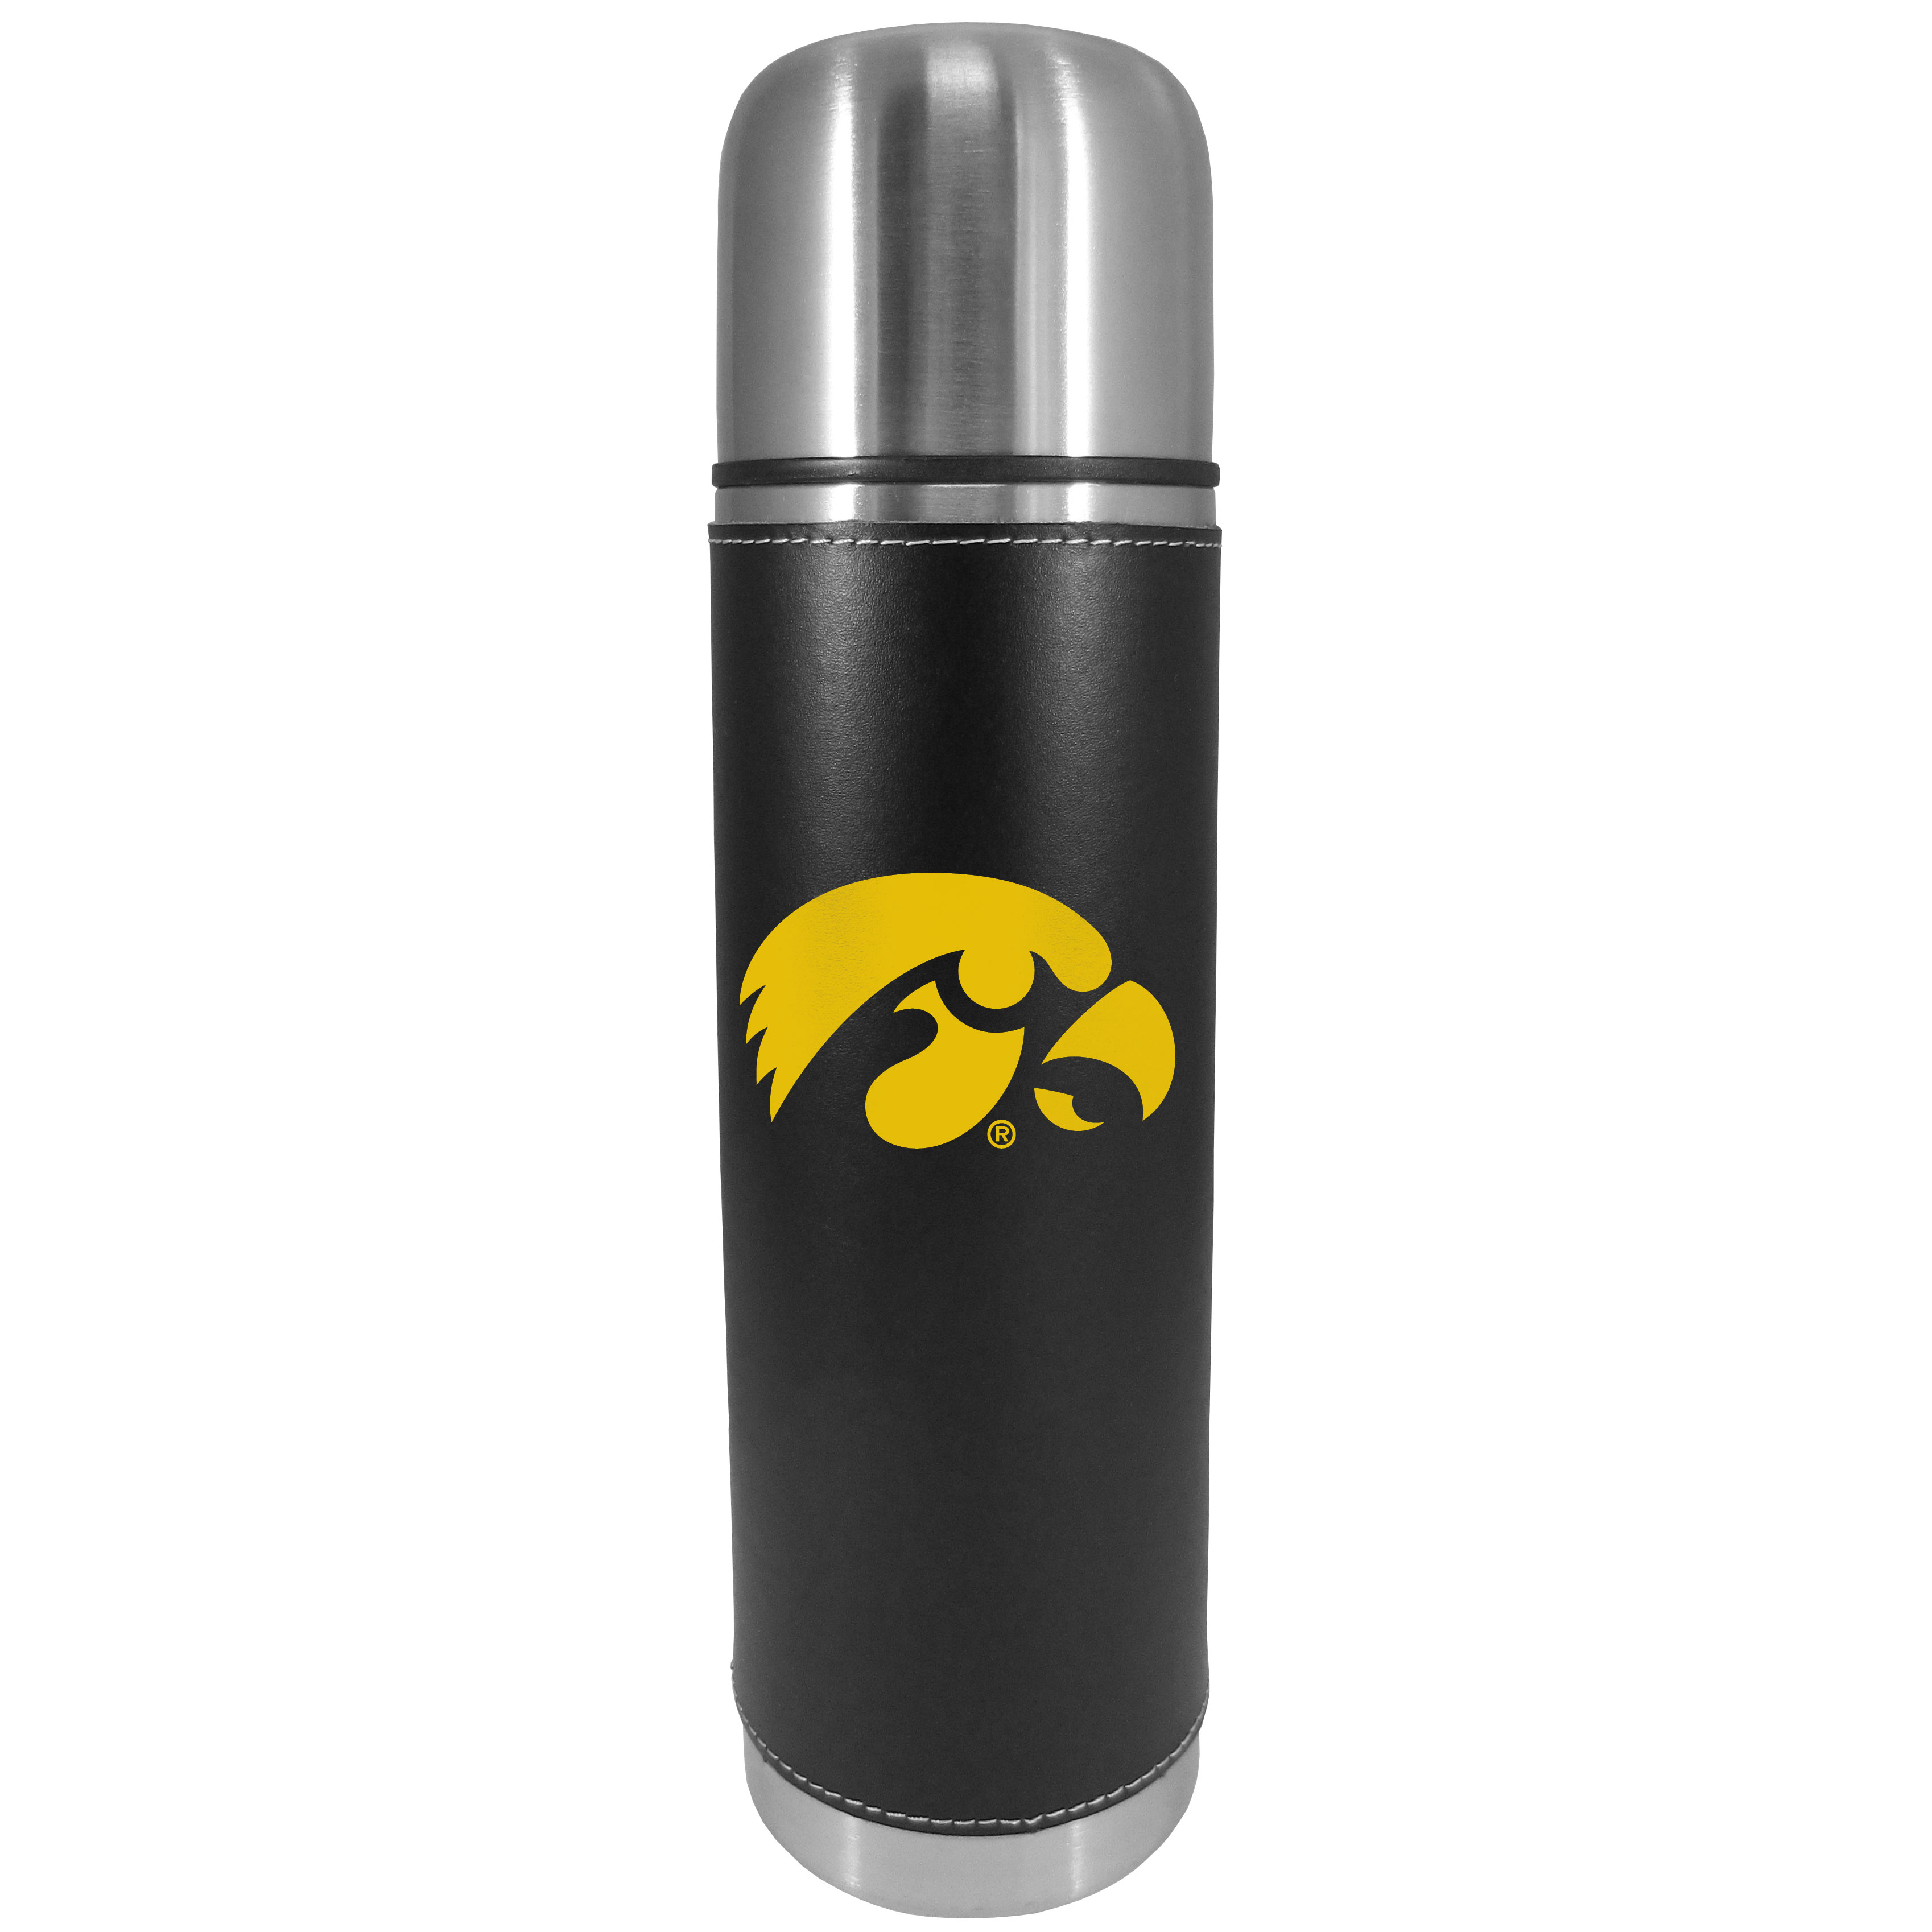 Iowa Hawkeyes Graphics Thermos - This attractive, 26 ounce Iowa Hawkeyes thermos is a great way to keep your beverages hot while on the go. The 11 inch tall, vacuum sealed thermos features a black vinyl wrap with stitched details and a digitally printed team logo. The lid screws on and can be used as a cup.